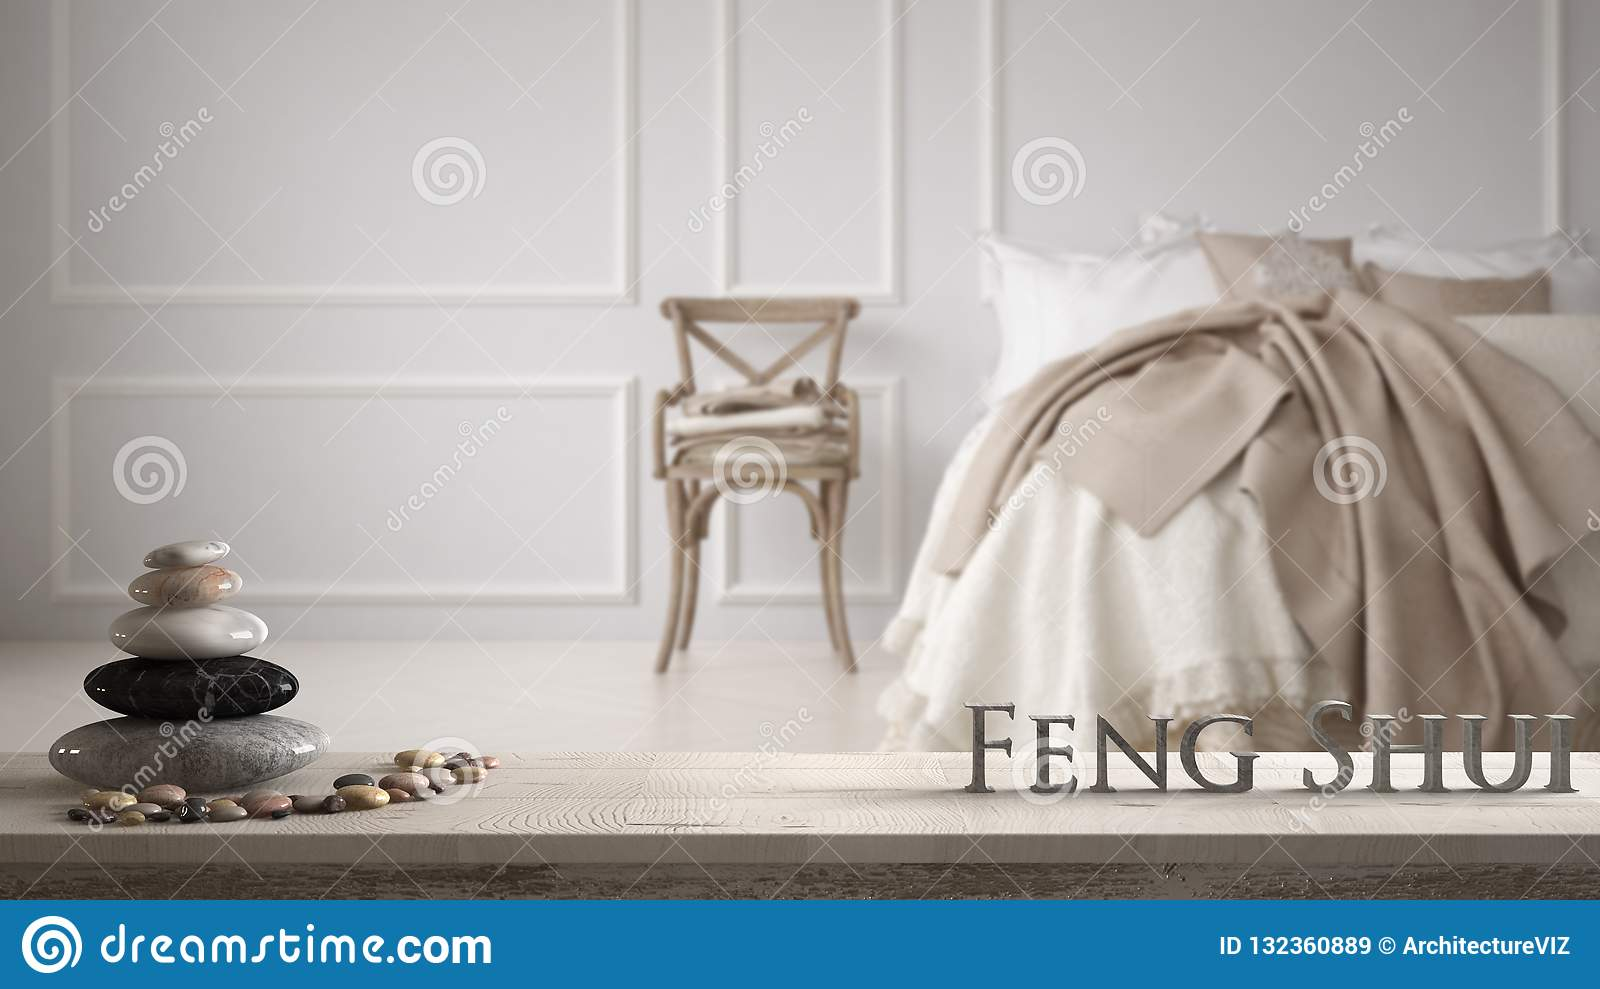 White table shelf with pebble balance and 3d letters making the word feng shui over evintage classic bedroom with soft bed full of